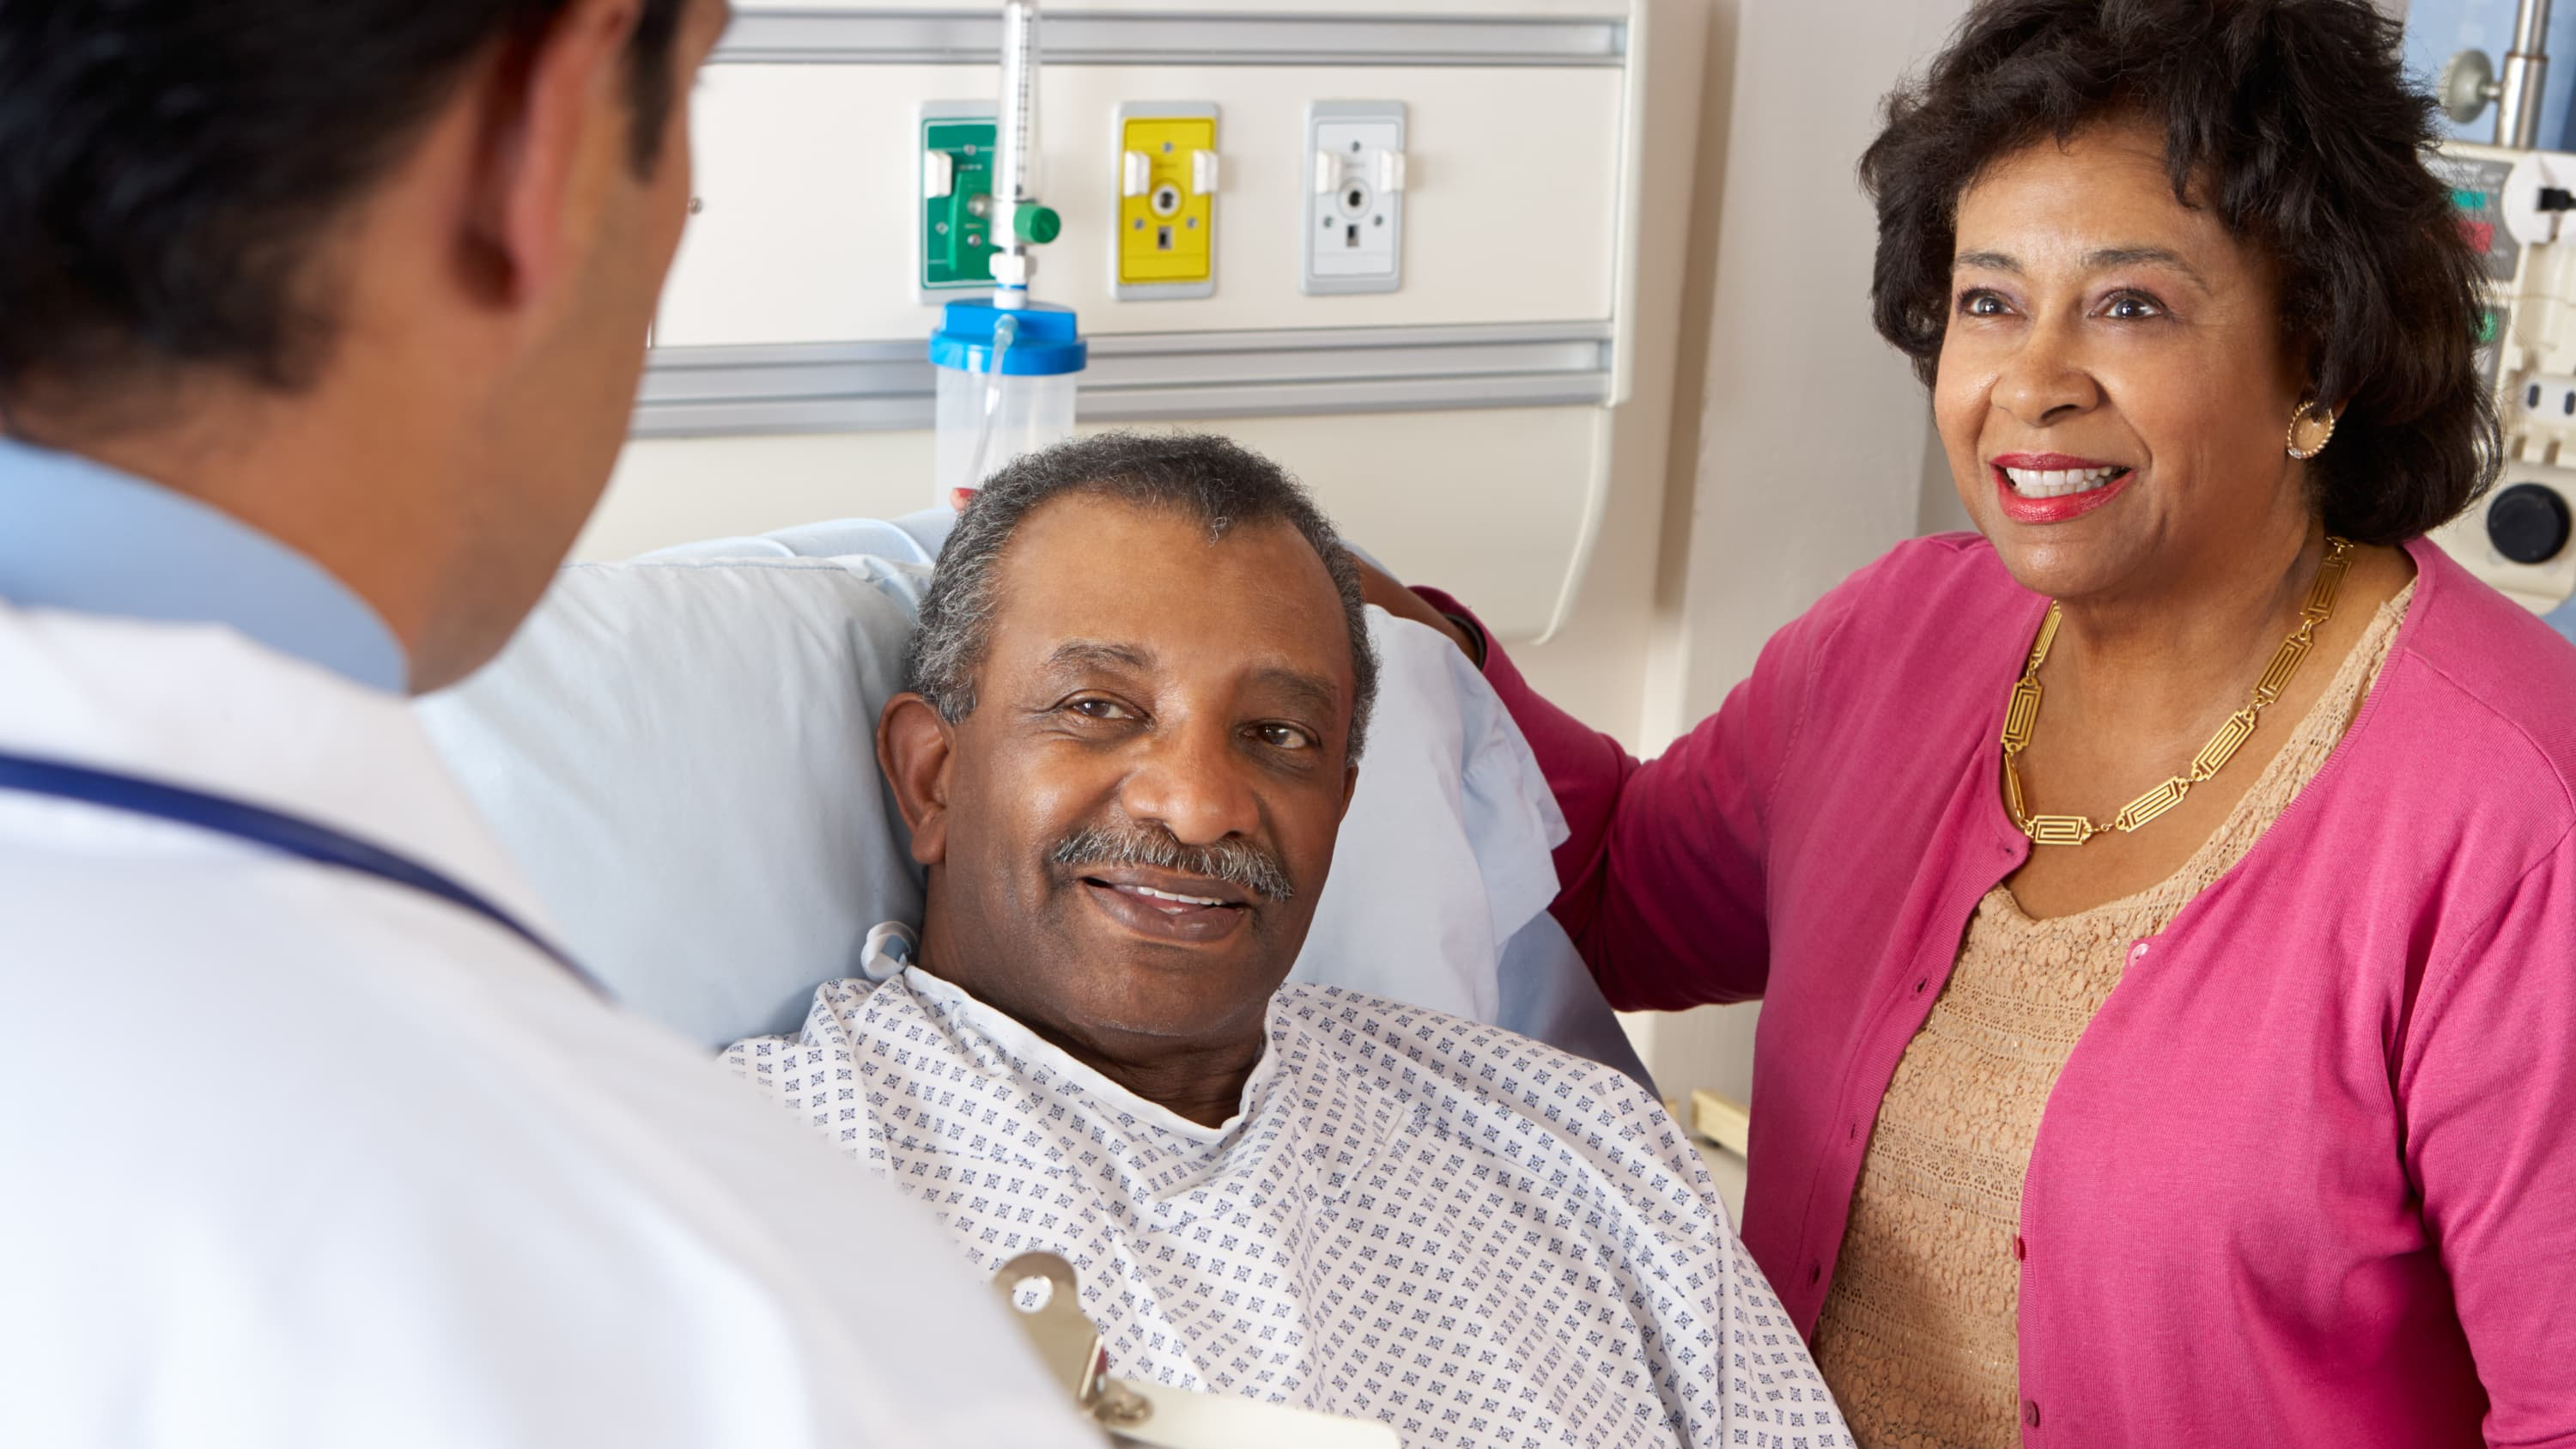 A man in a hospital bed talks to his wife (in a bright pink sweater) and his doctor after minimally invasive gastrointestinal surgery.